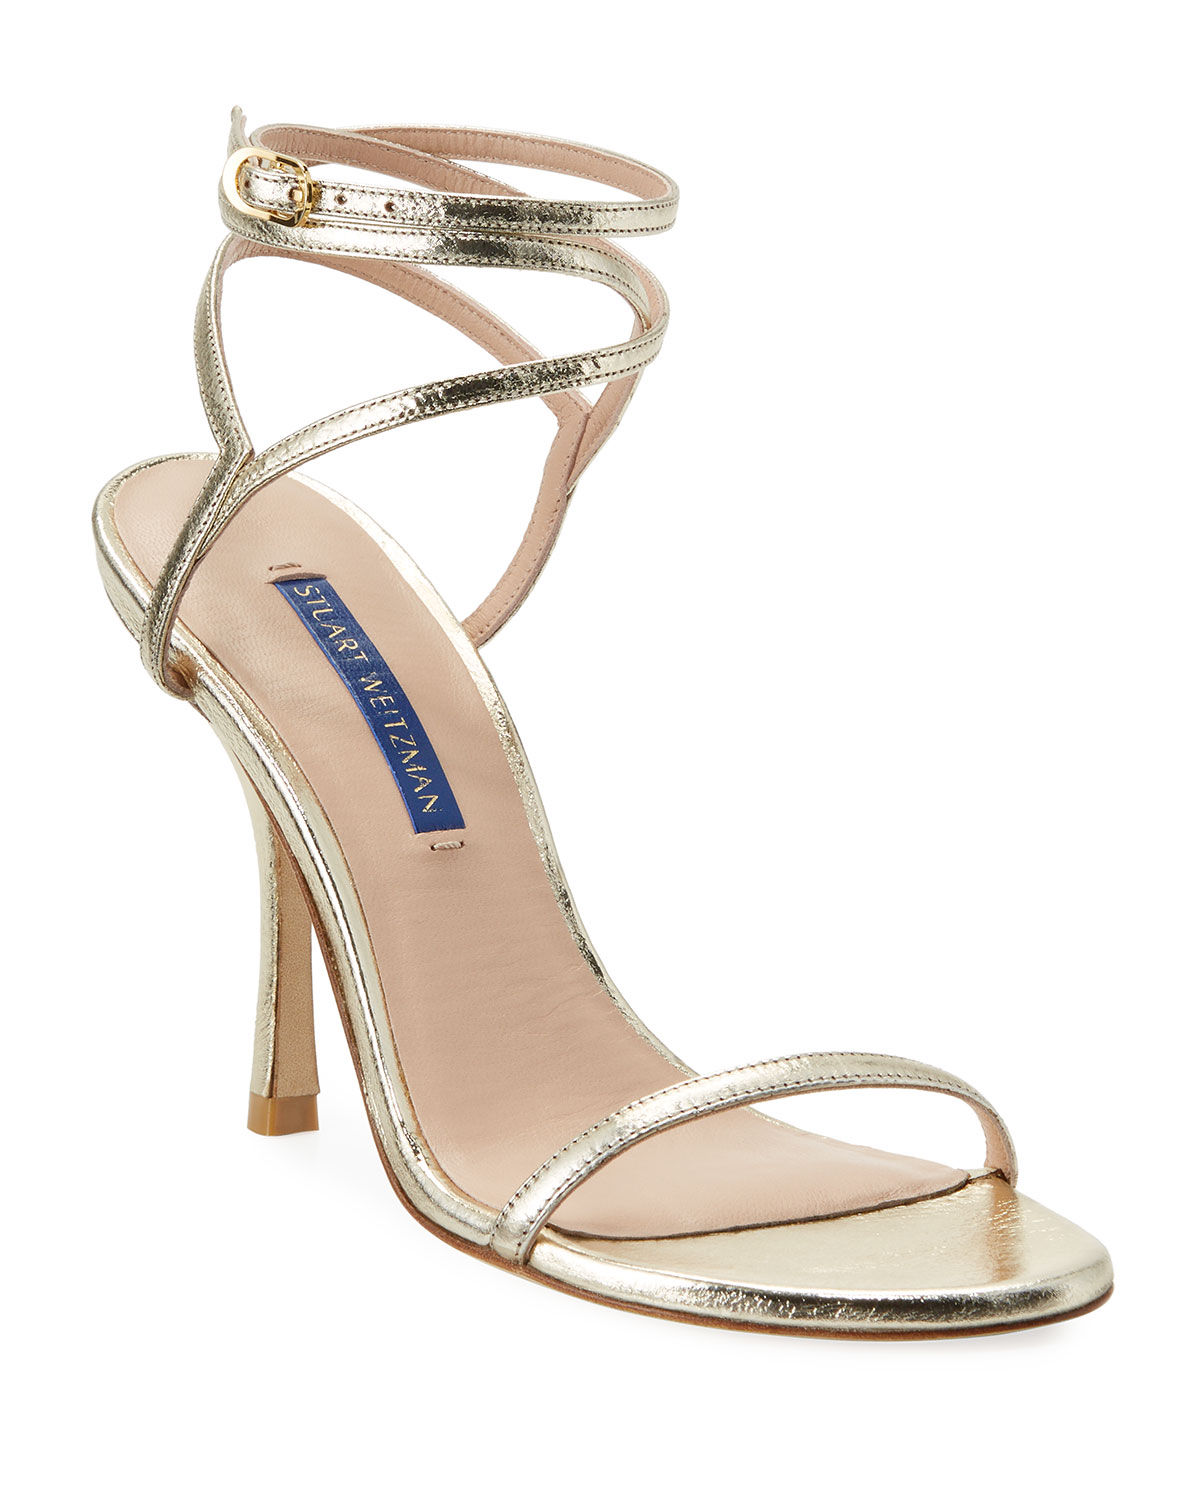 Stuart Weitzman Sandals Merinda Strappy Metallic Ankle-Wrap Sandals